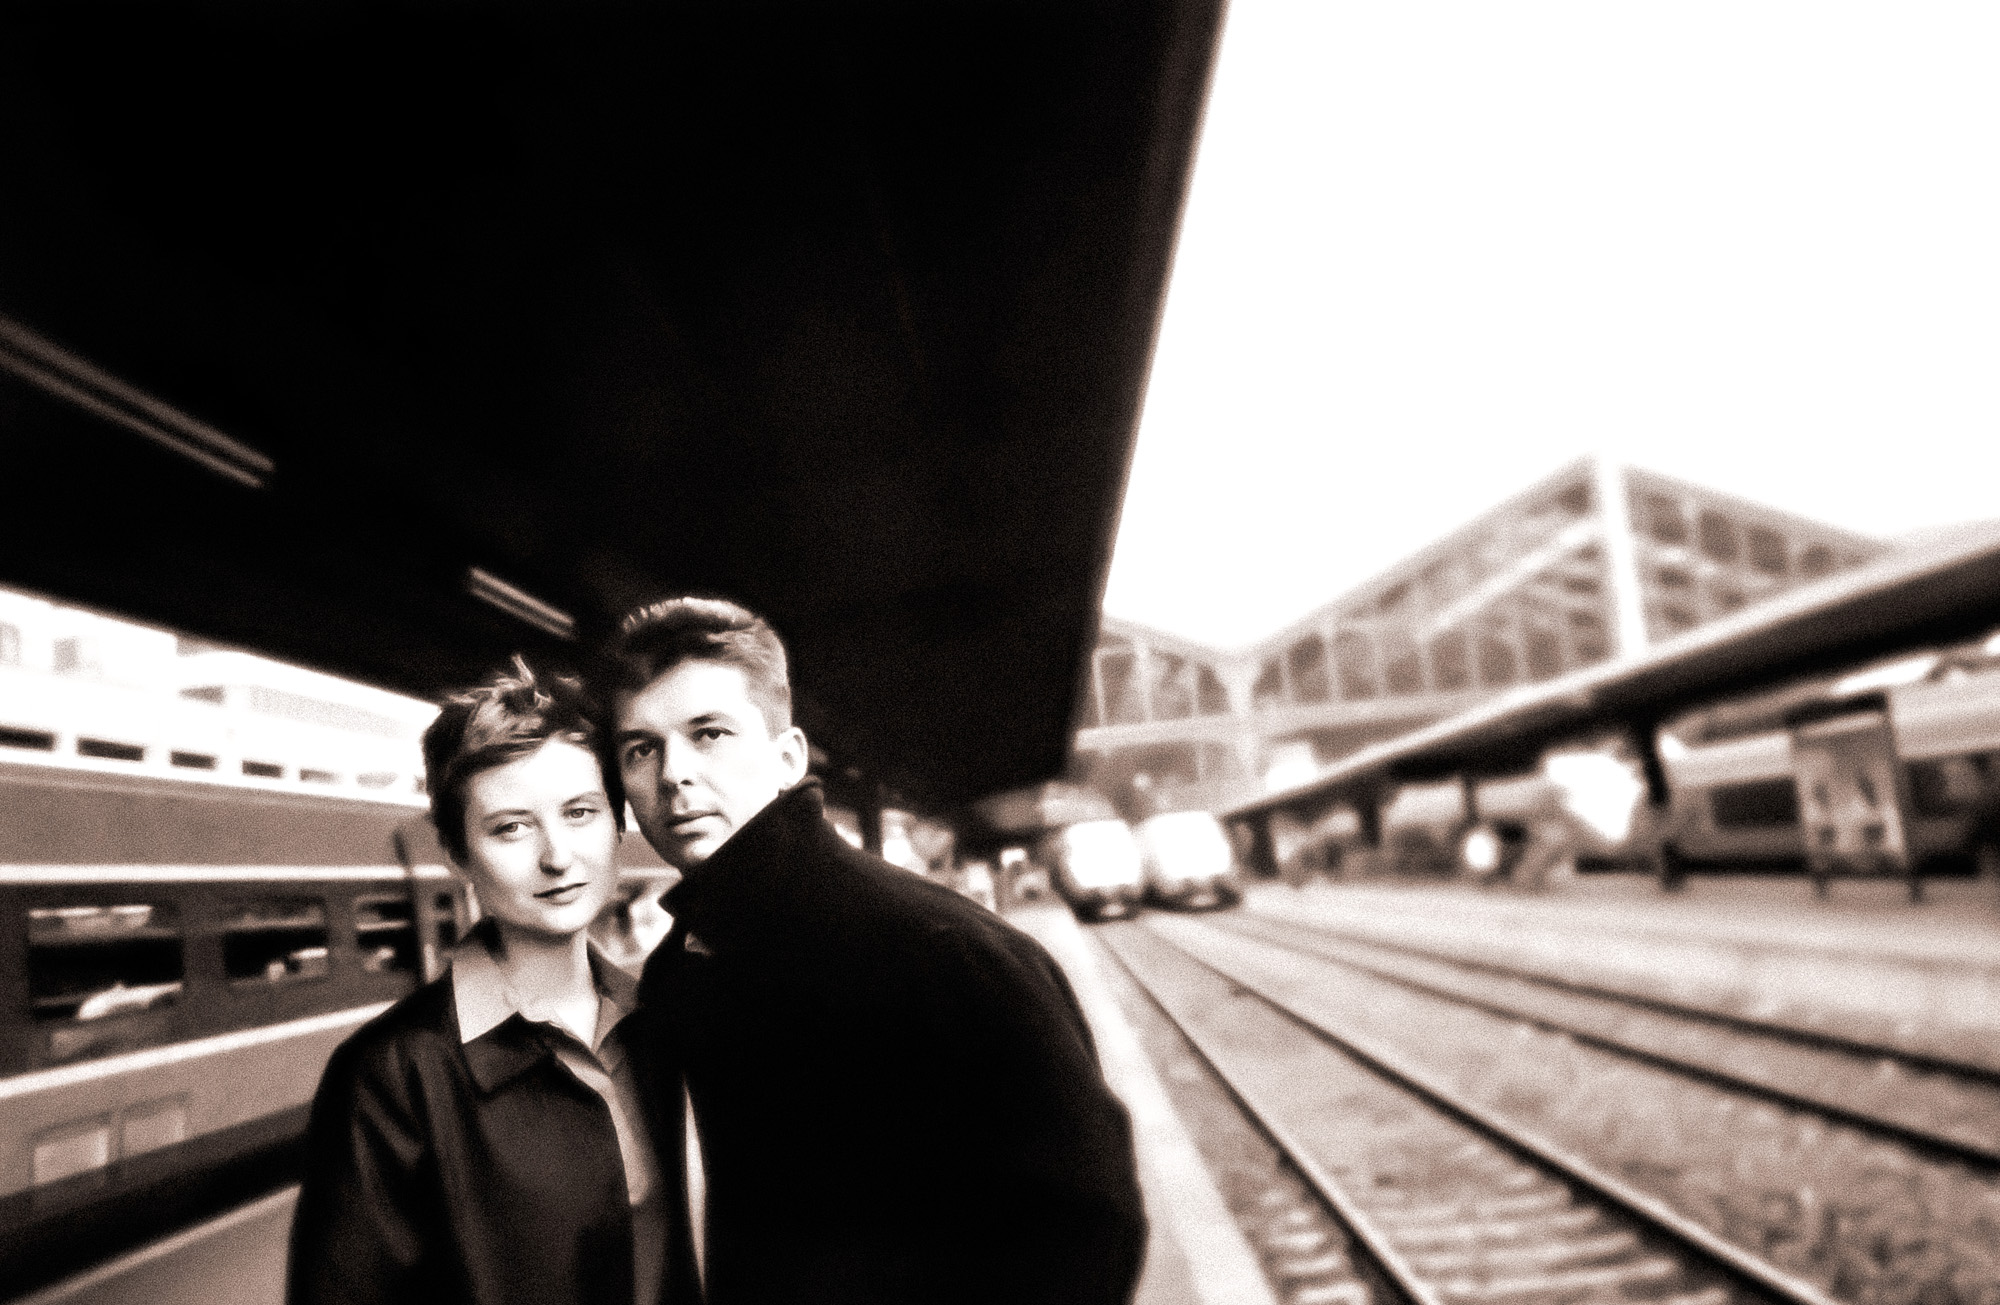 Couple at Gare du Nord train station, Paris France